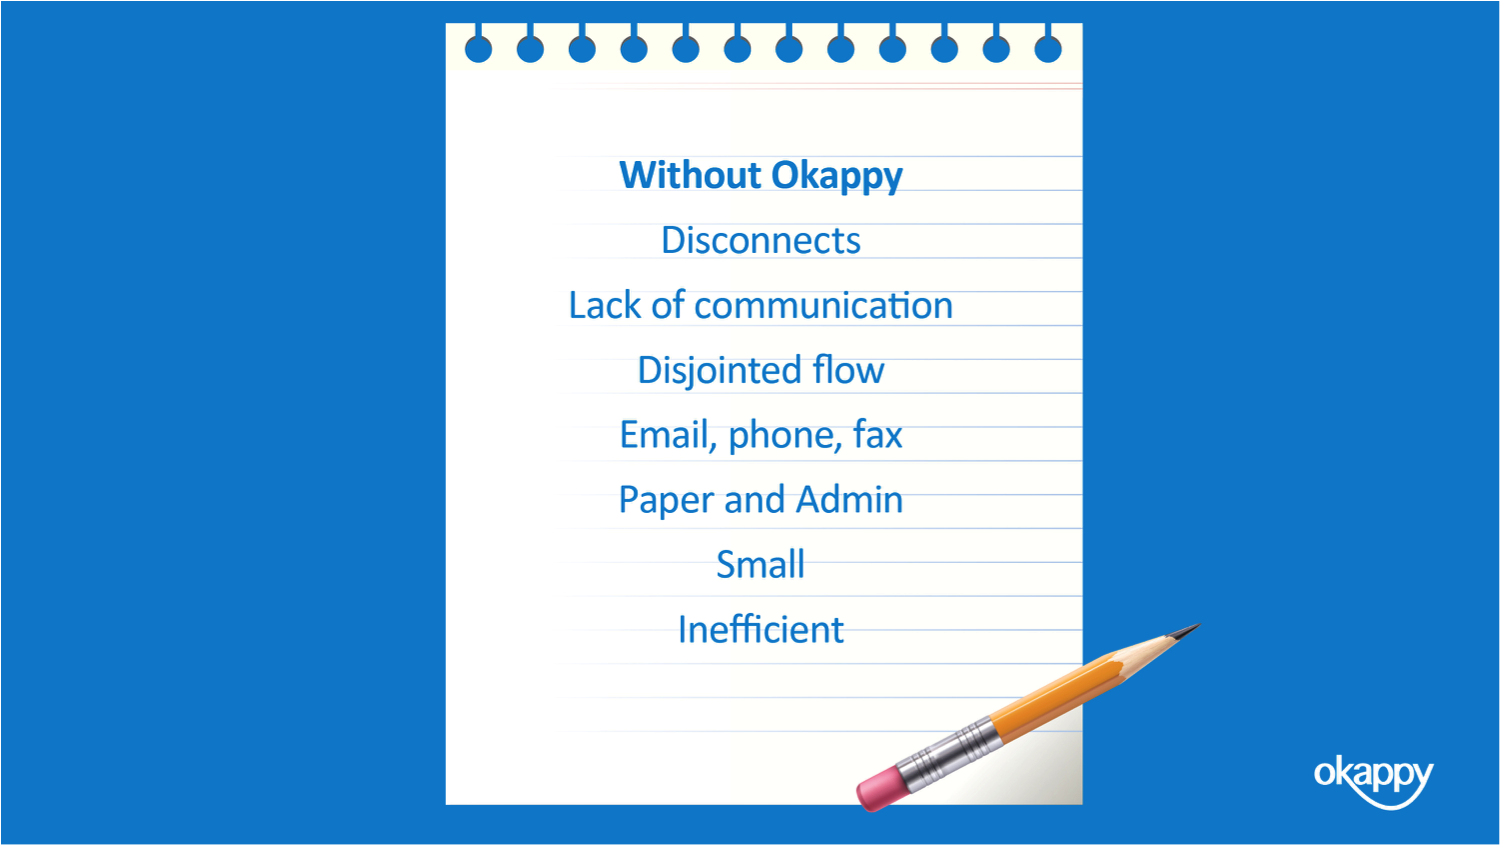 Workforce management improvements without Okappy